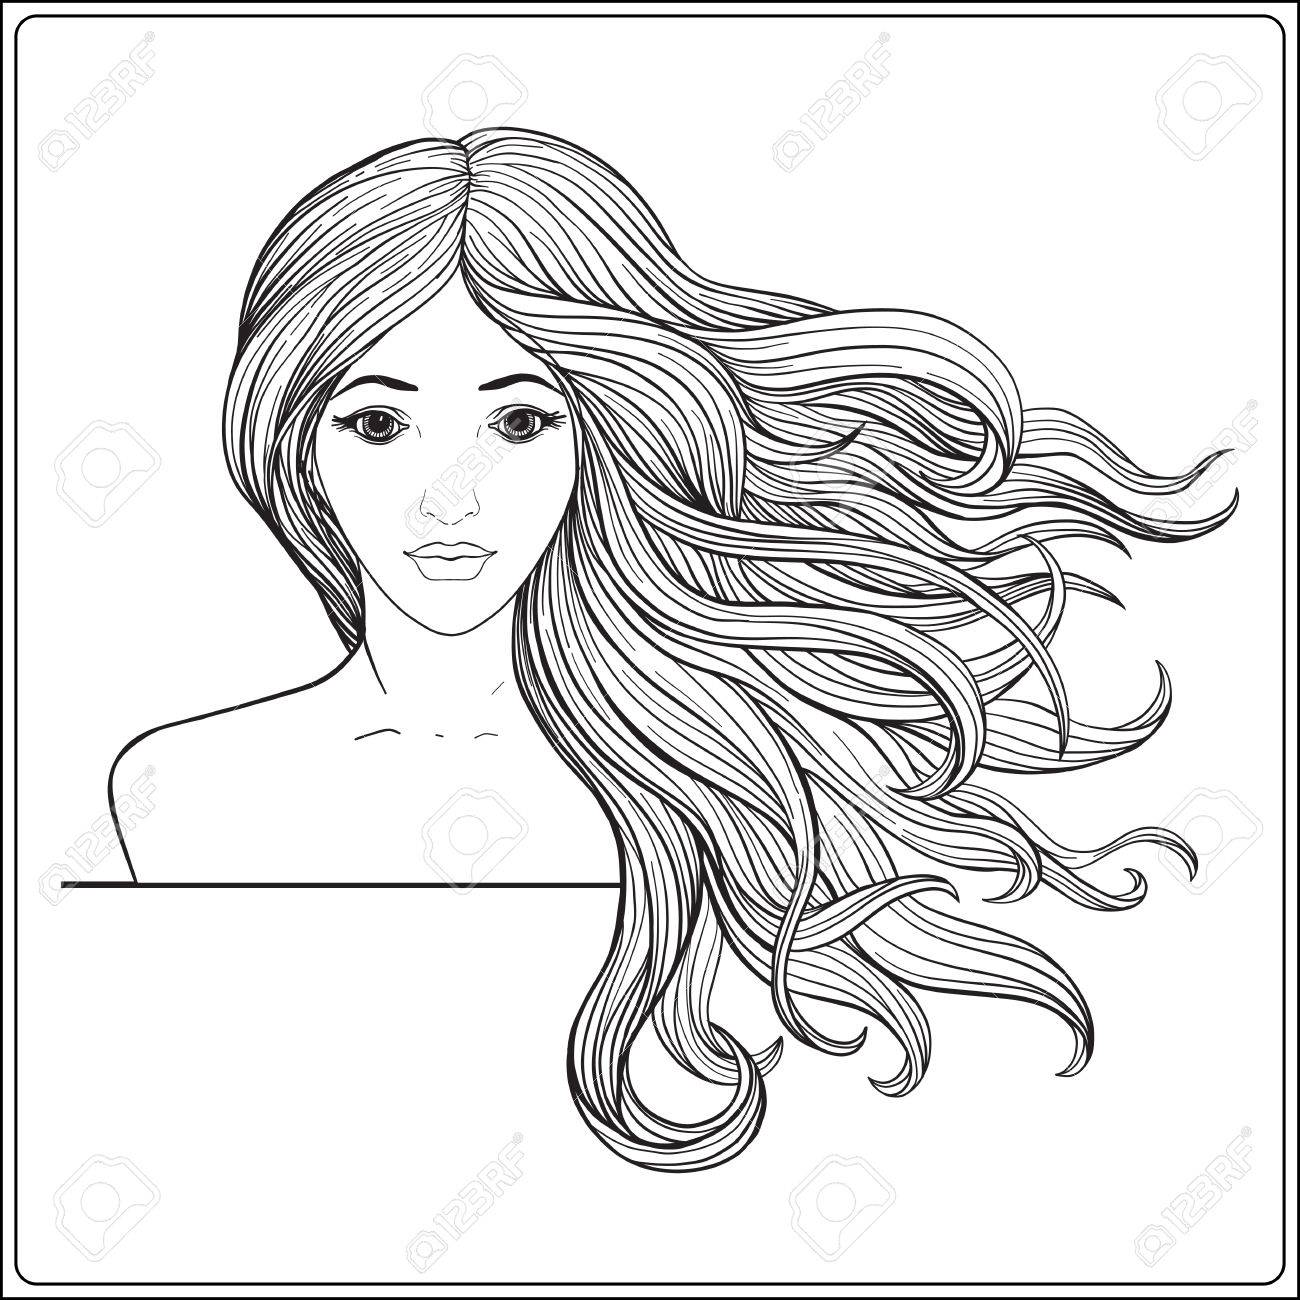 Girl With Long Hair Drawing At Getdrawings